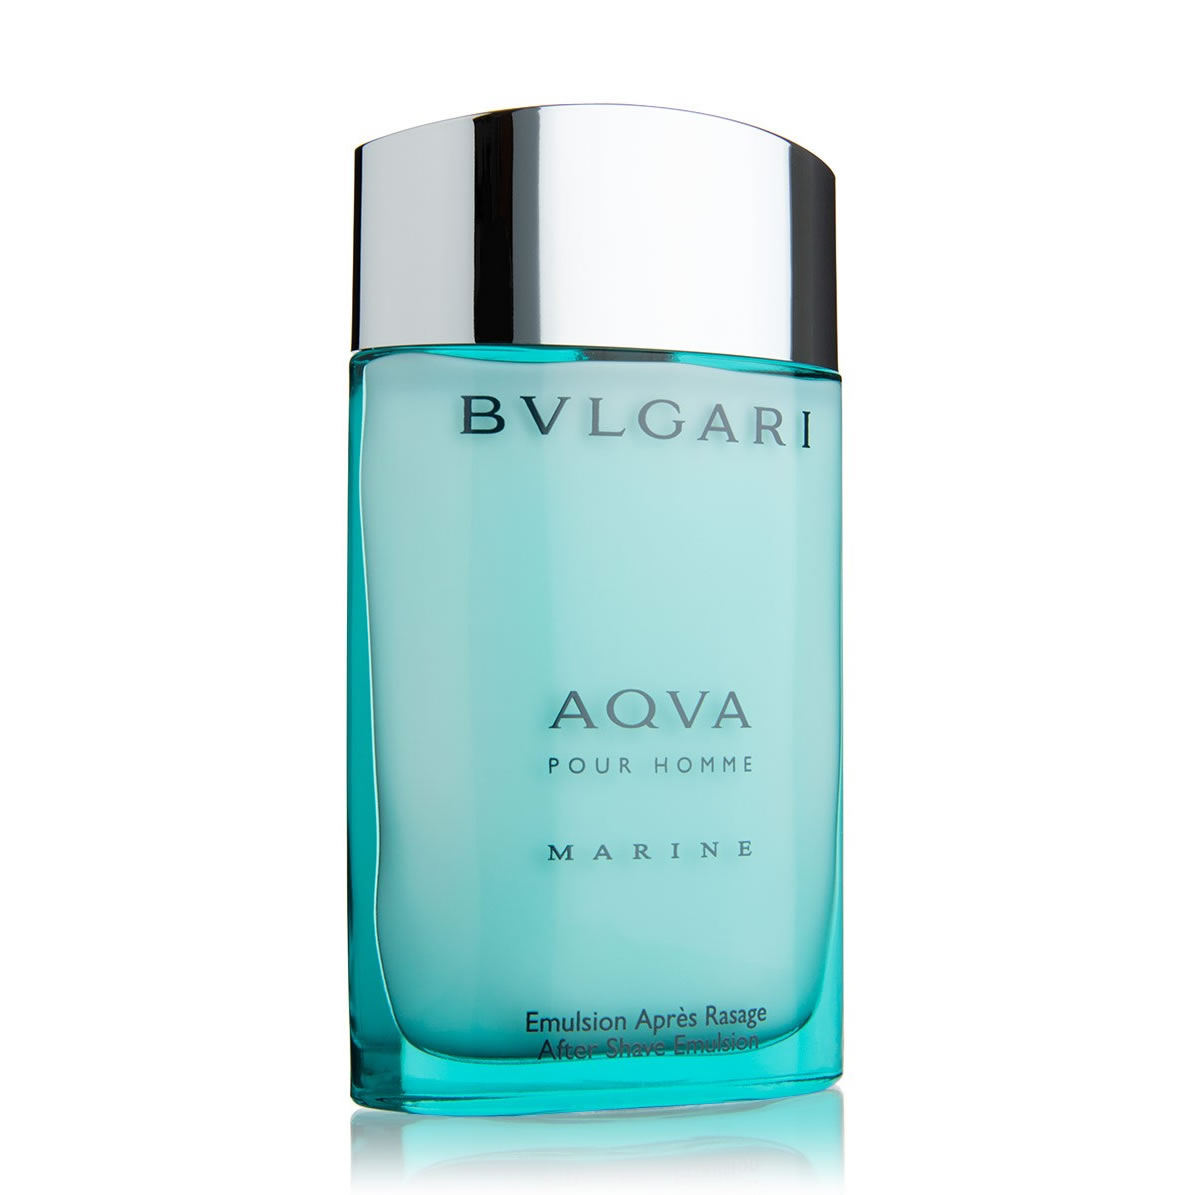 Bvlgari  Aqva 100ml three 100ml